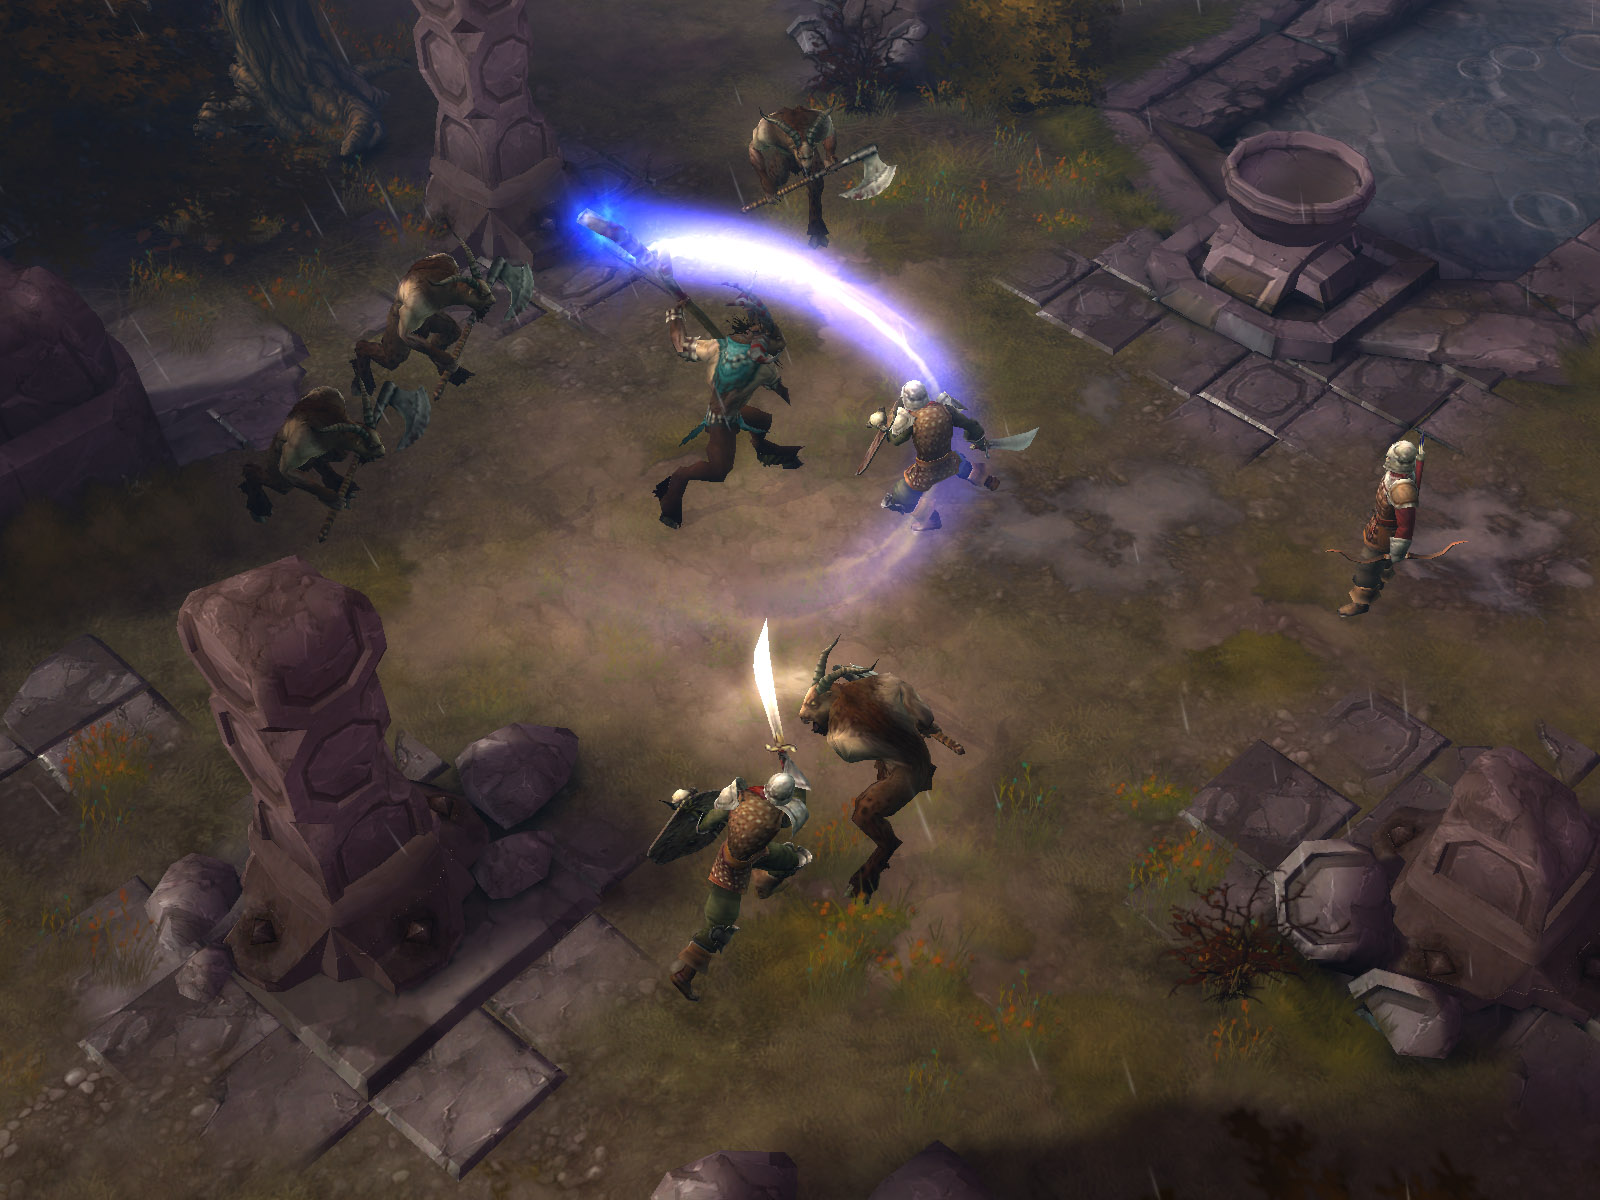 Diablo 3 Auction Houses to remain offline for 'at least another 24 hours'